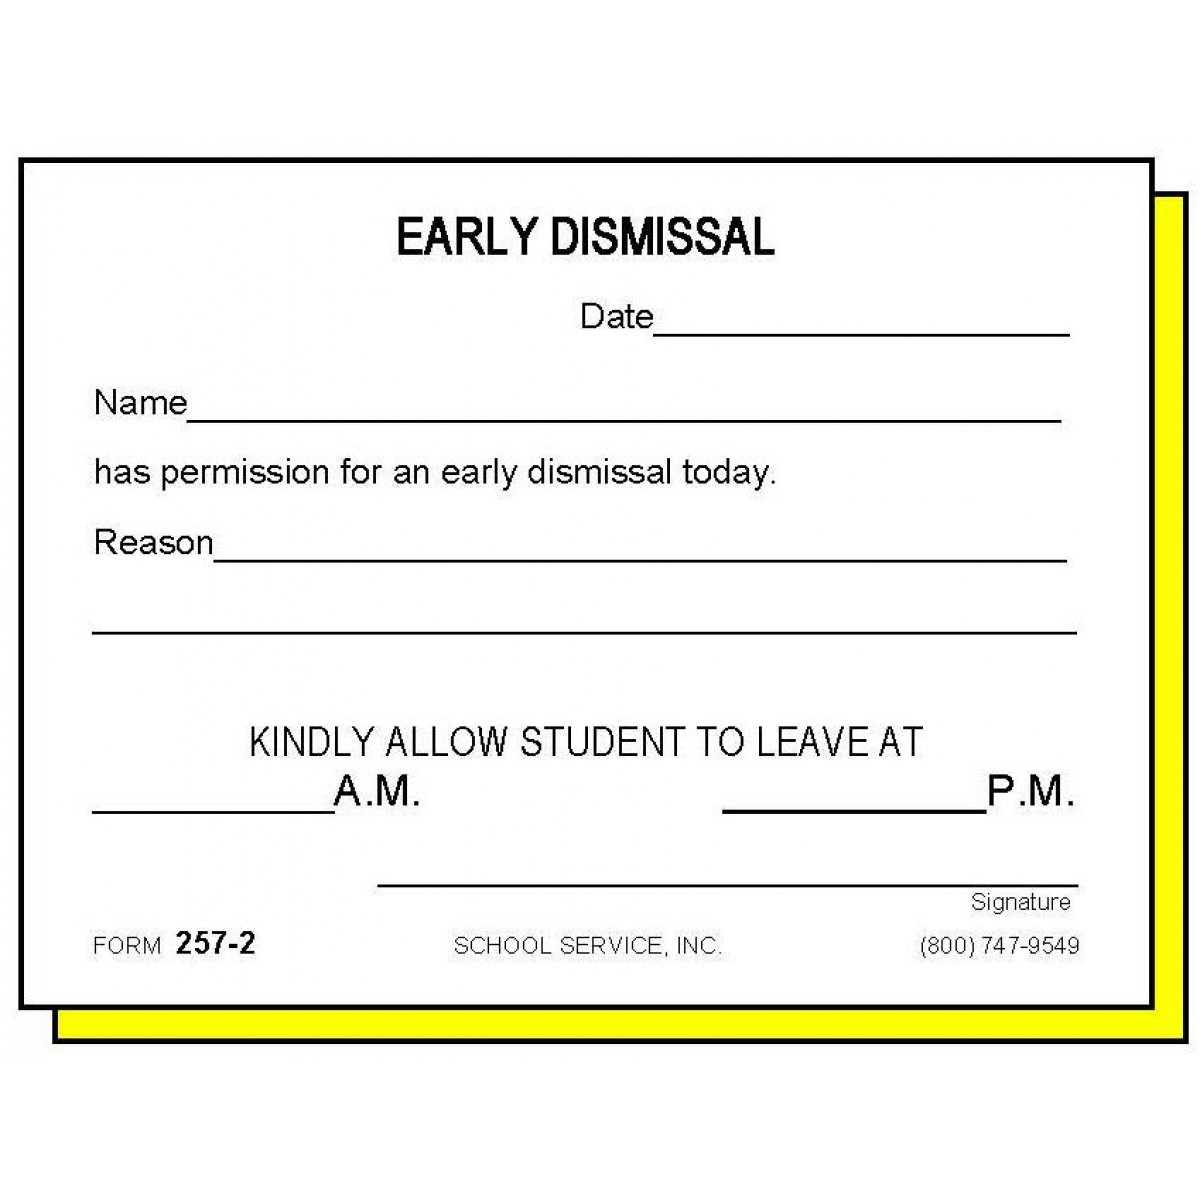 2 - Two-Part Early Dismissal - Carbonless Forms